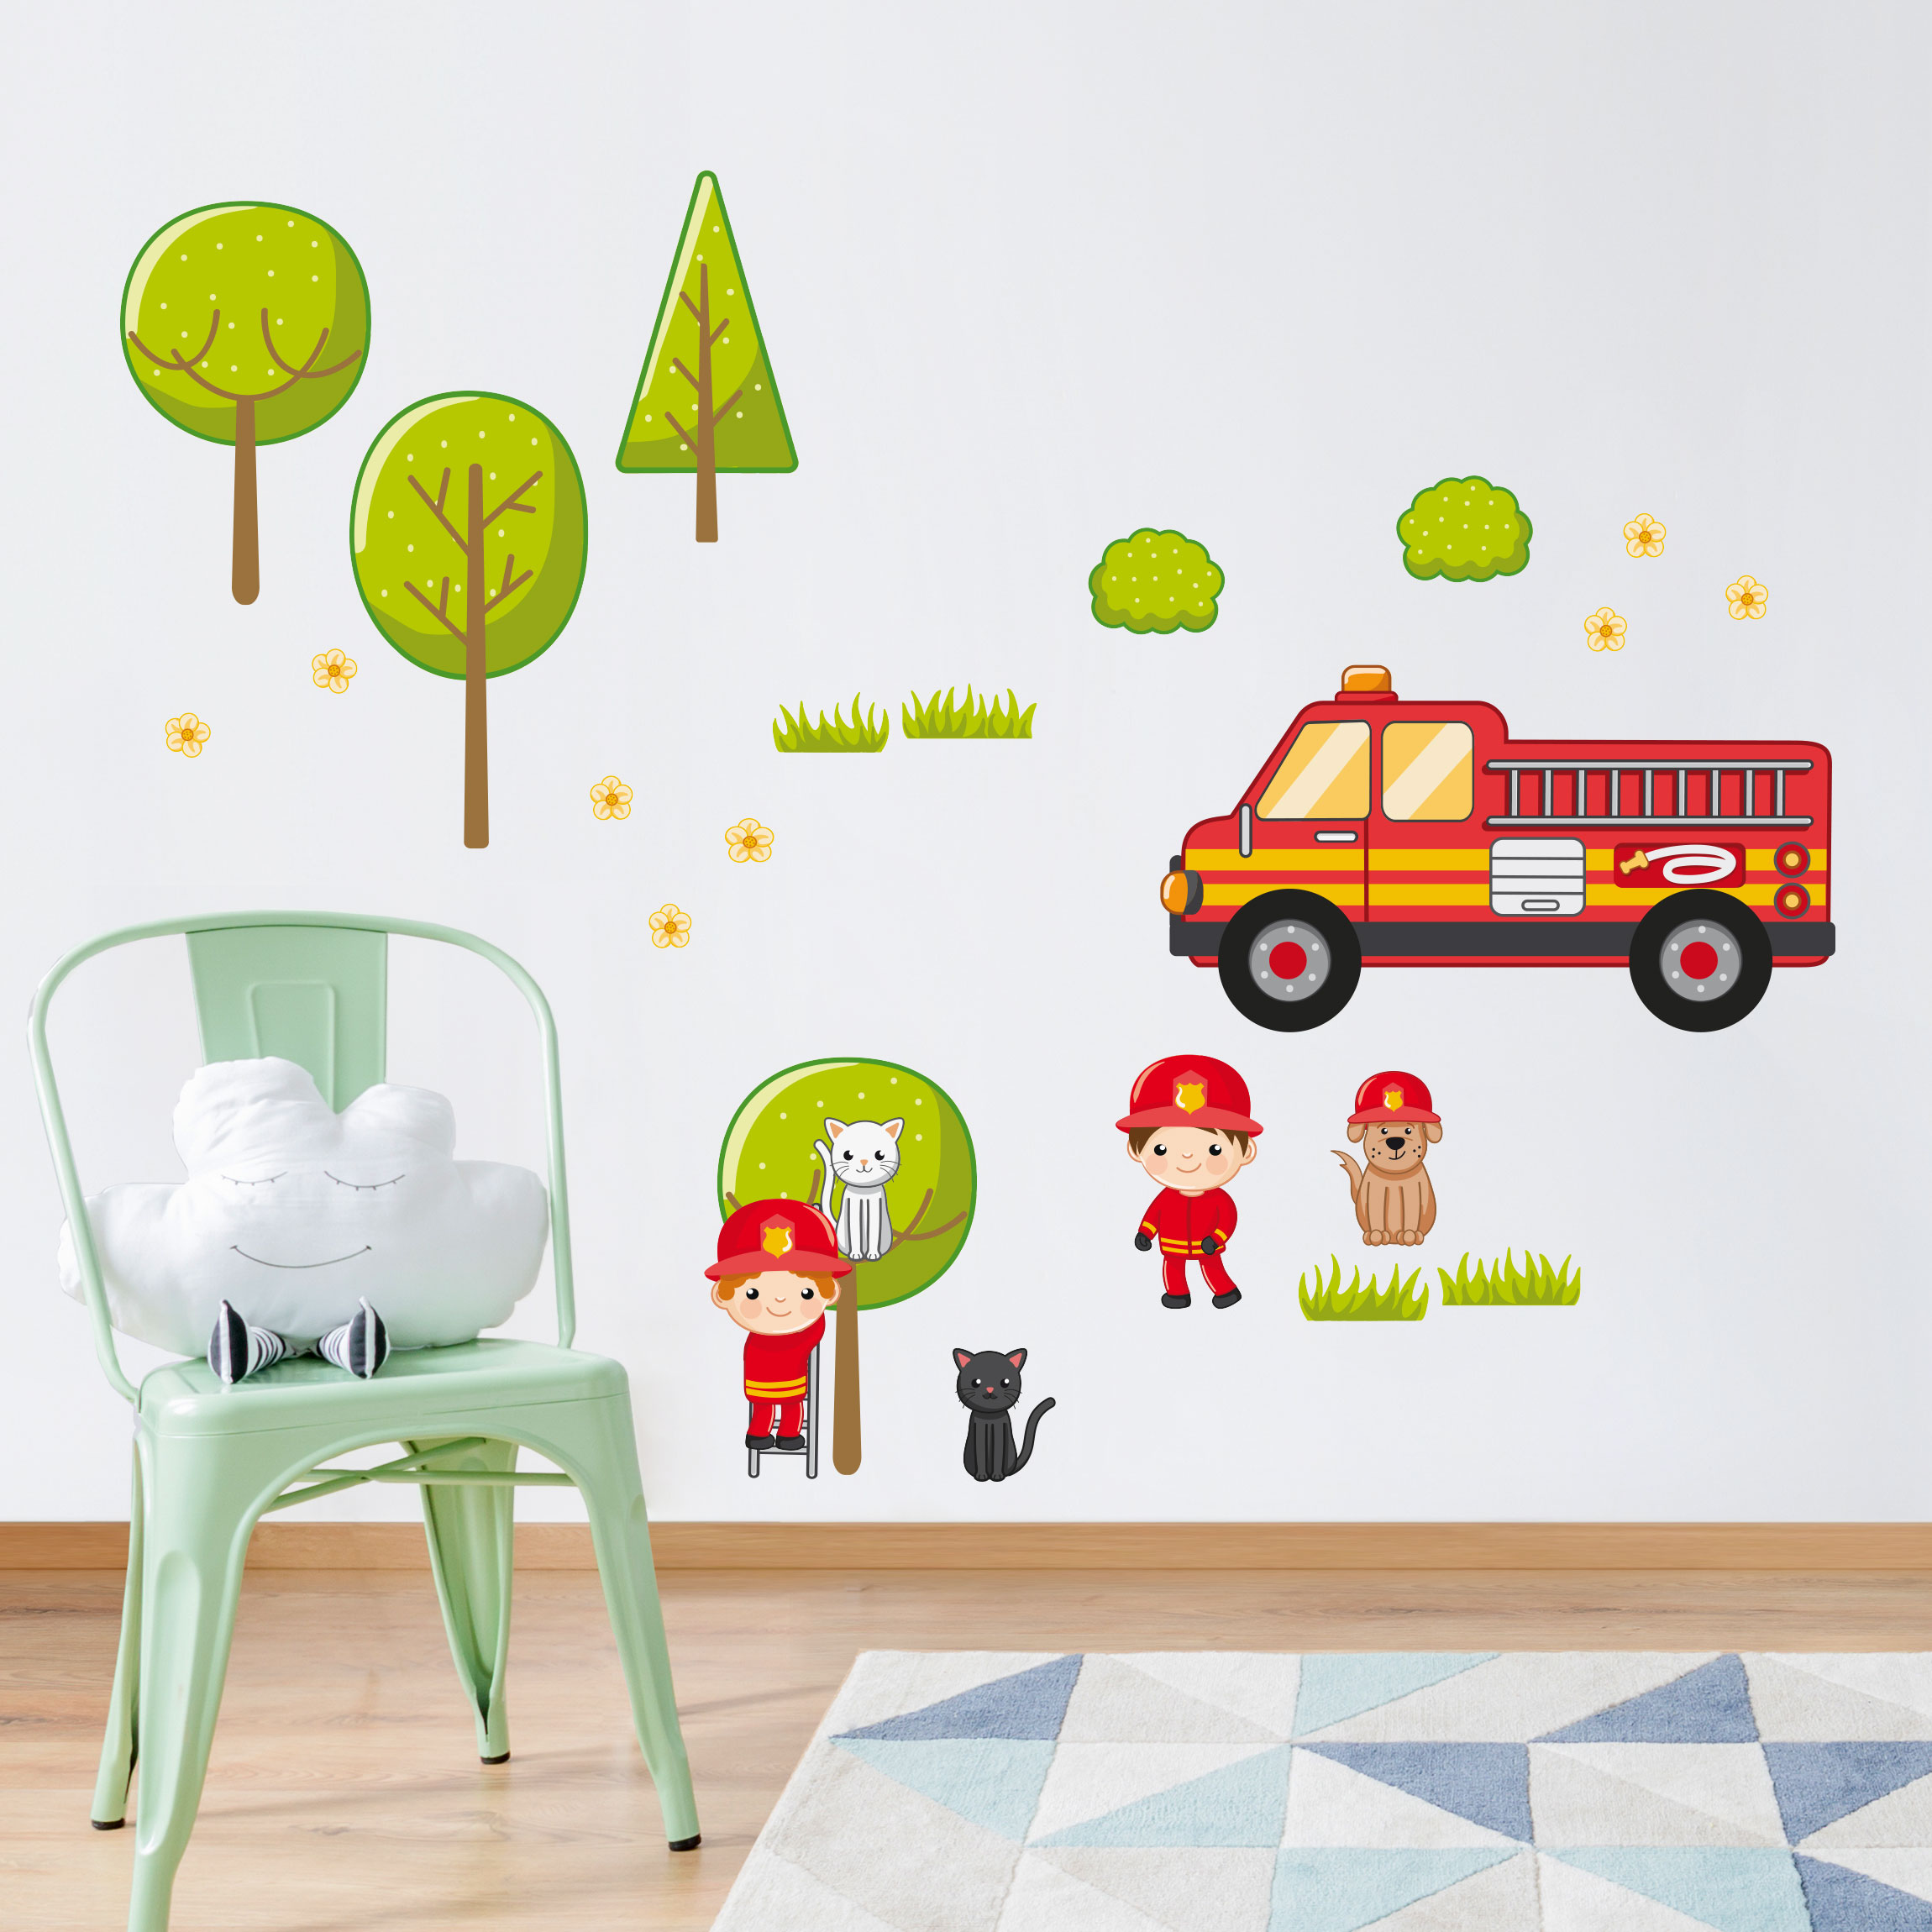 wandtattoo kinderzimmer feuerwehr set mit katzen. Black Bedroom Furniture Sets. Home Design Ideas